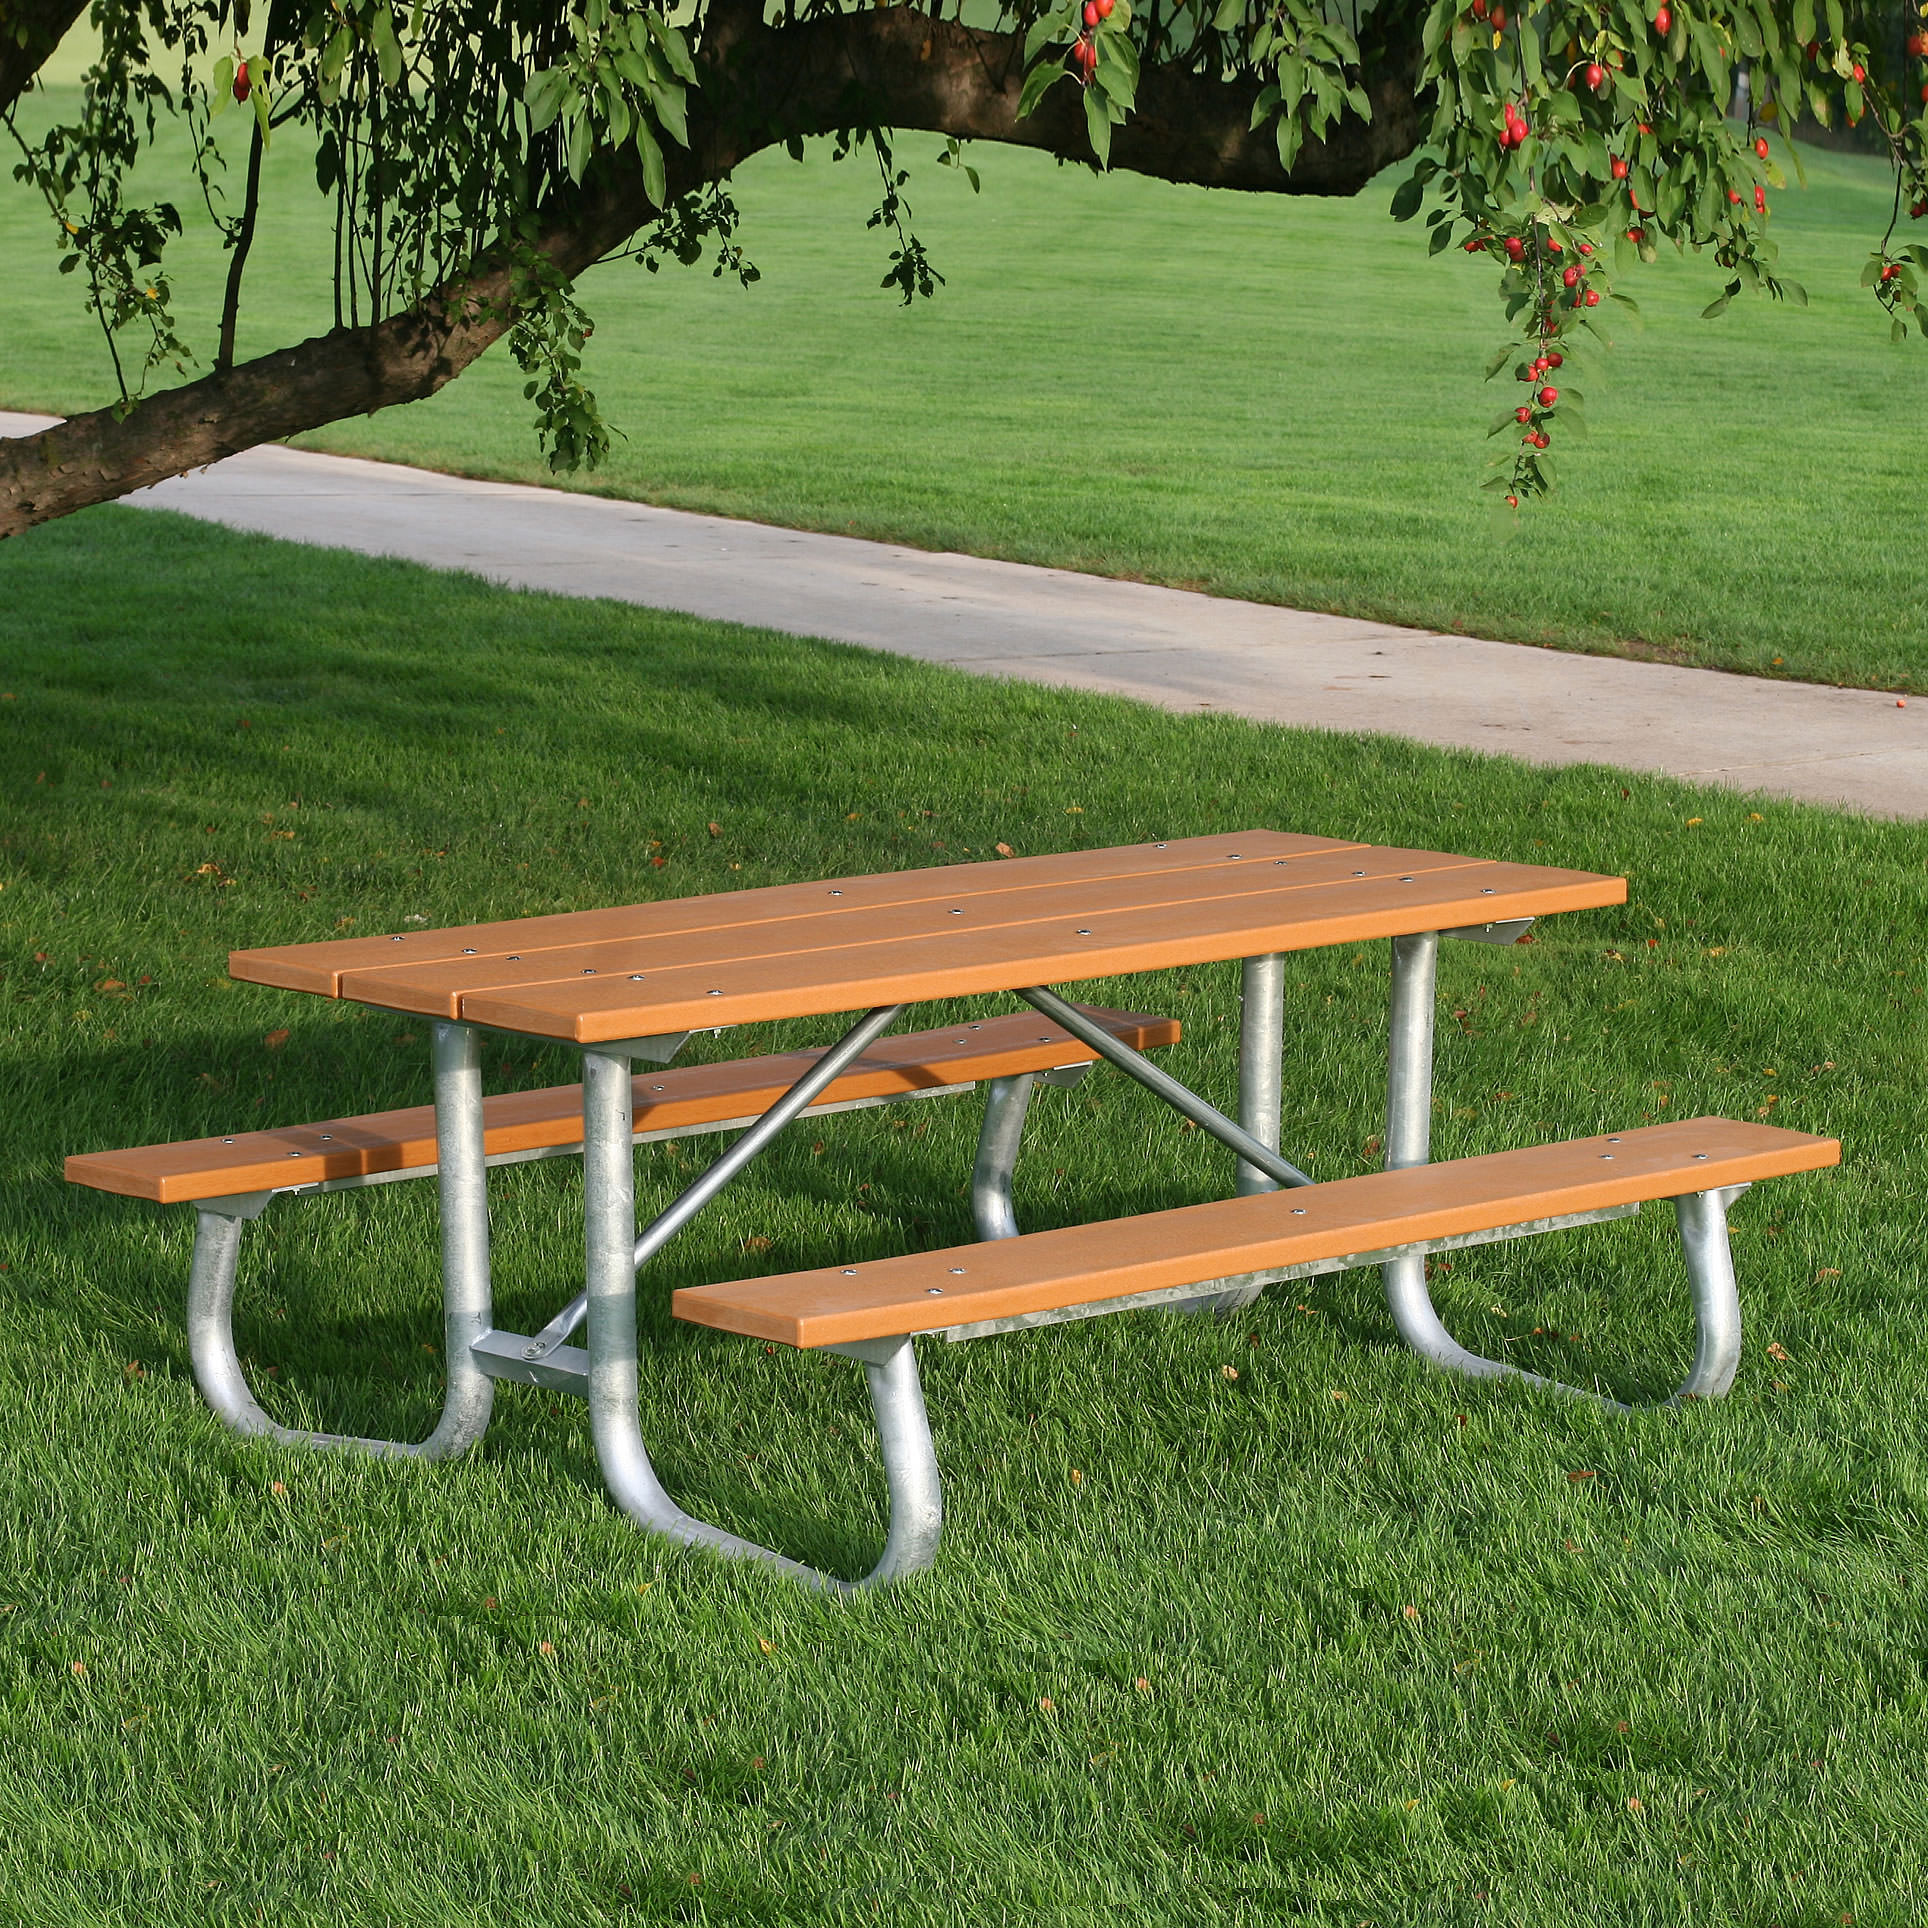 Galvanized Frame Picnic Table Commercial Collections - Galvanized picnic table frame